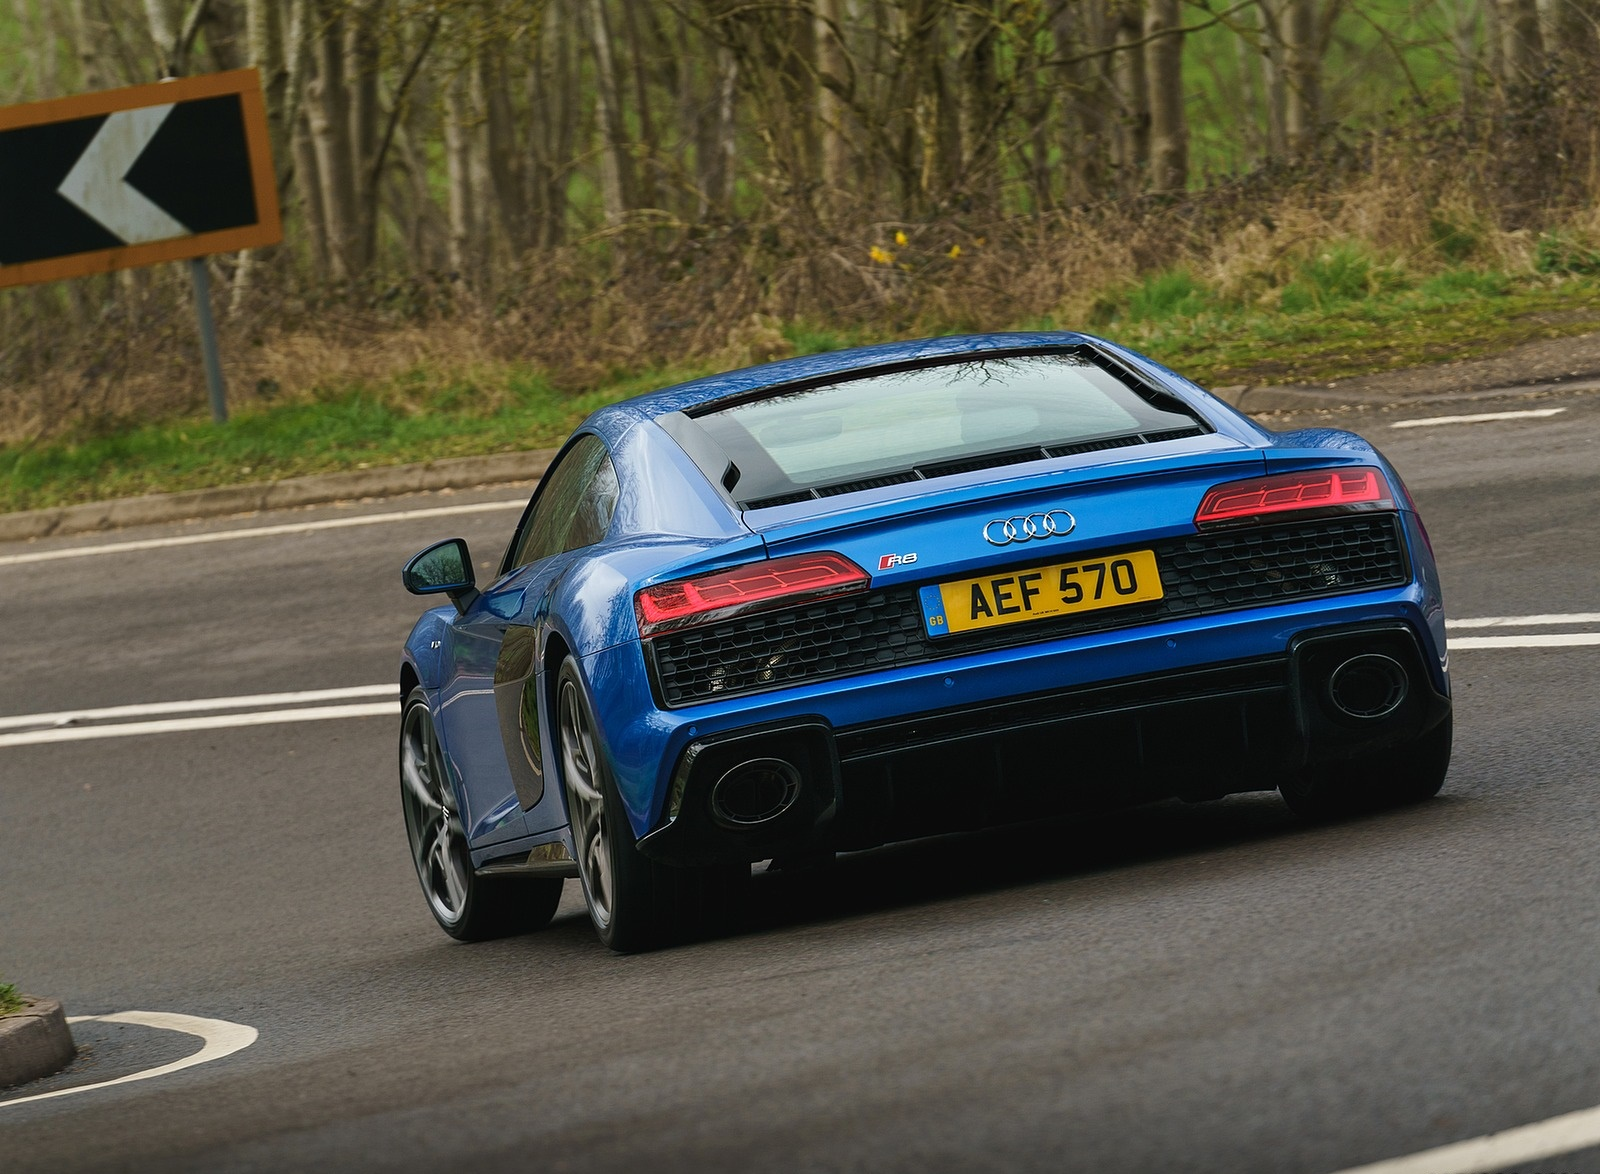 2019 Audi R8 V10 Coupe quattro (UK-Spec) Rear Wallpaper (12)